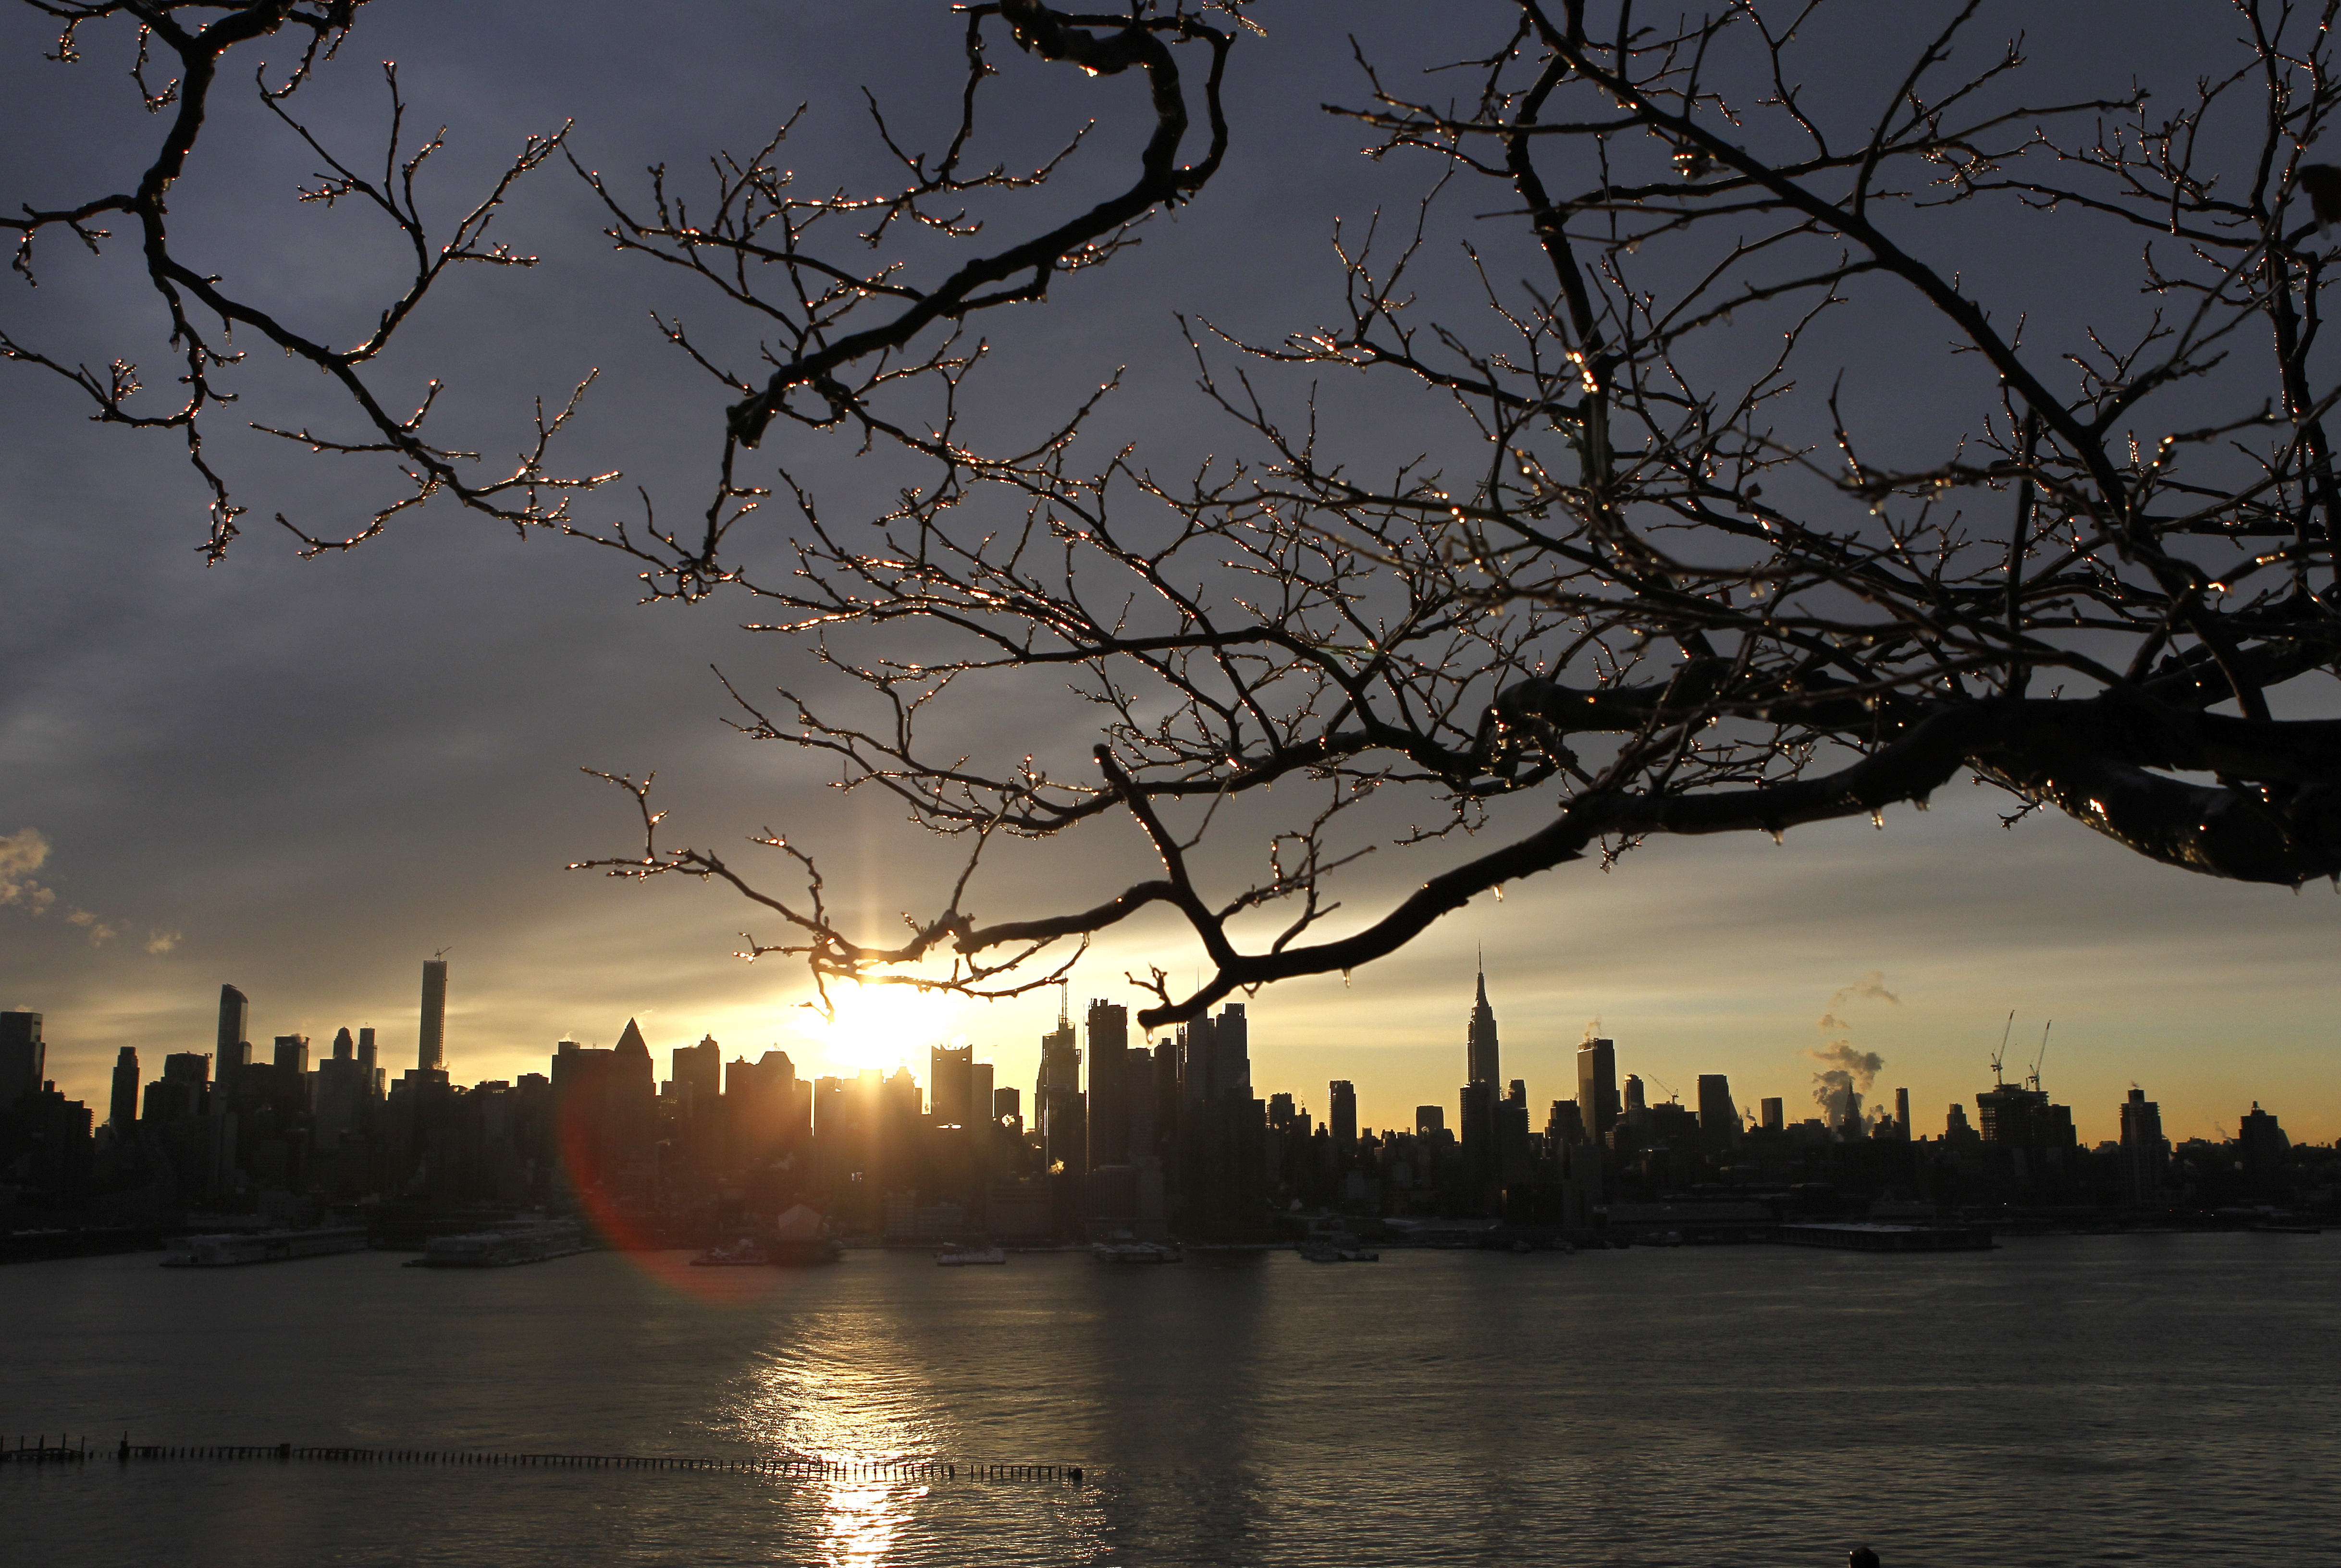 The sun rises behind the skyline of Manhattan in New York